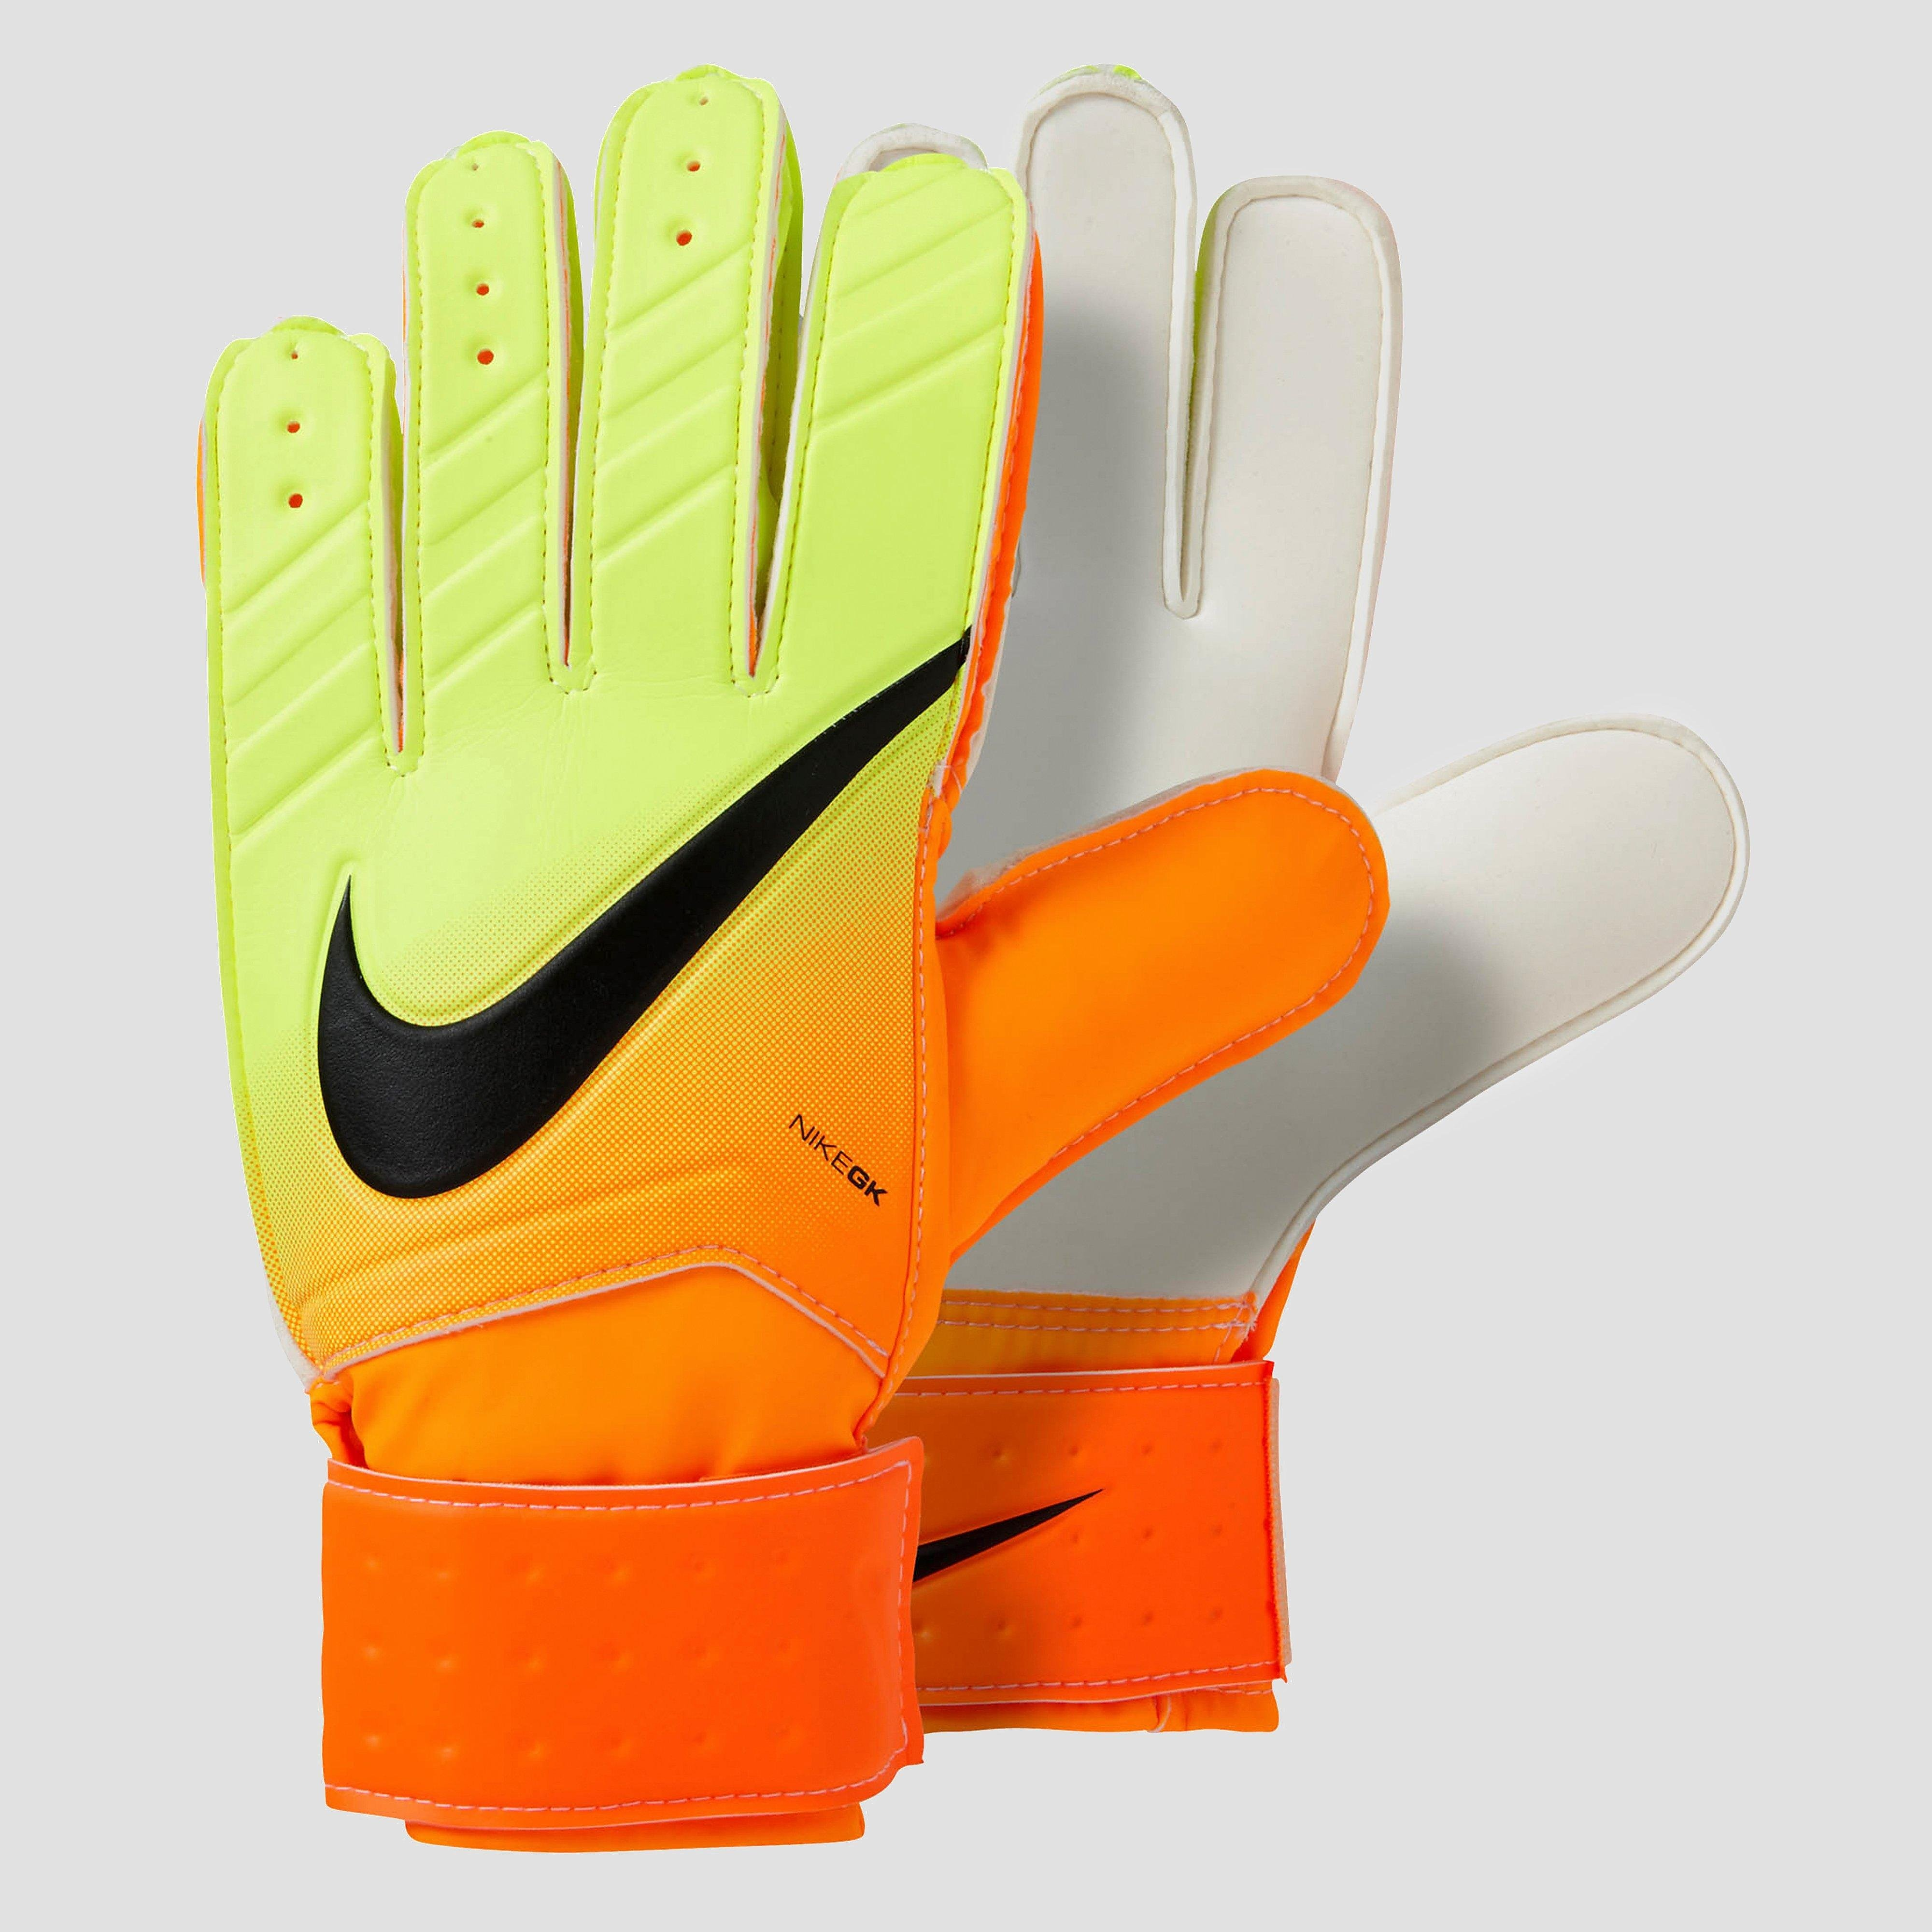 NIKE GOALKEEPER MATCH FA16 KEEPERSHANDSCHOENEN GEEL/ORANJE HEREN